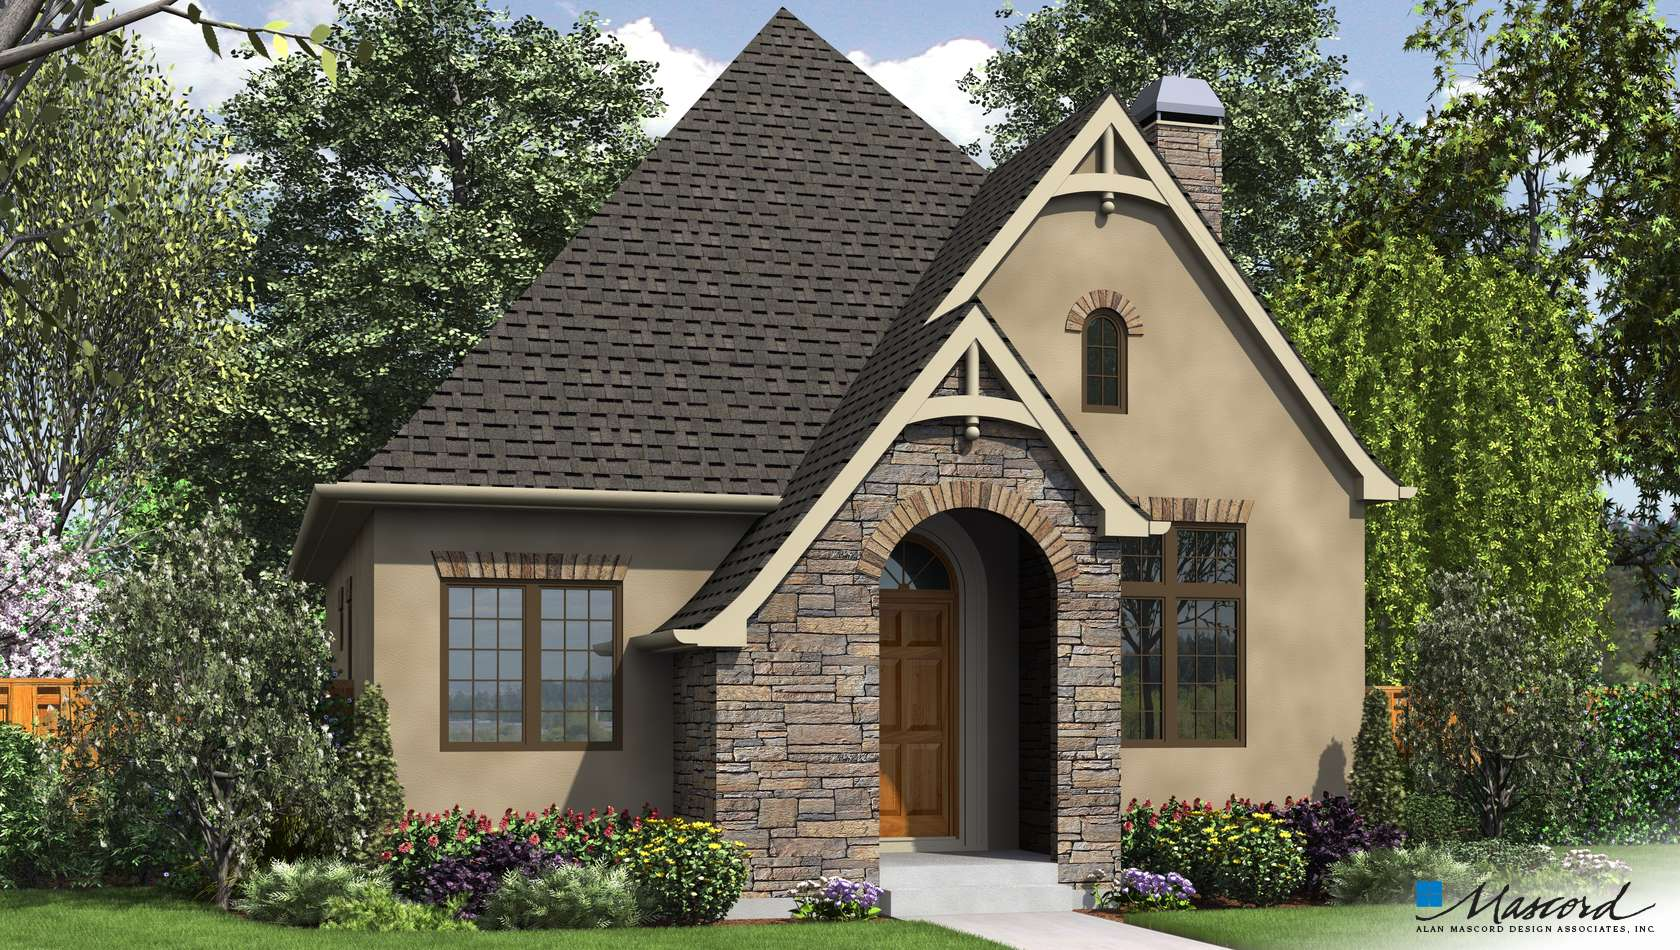 Main image for house plan 1176A: The Cecil